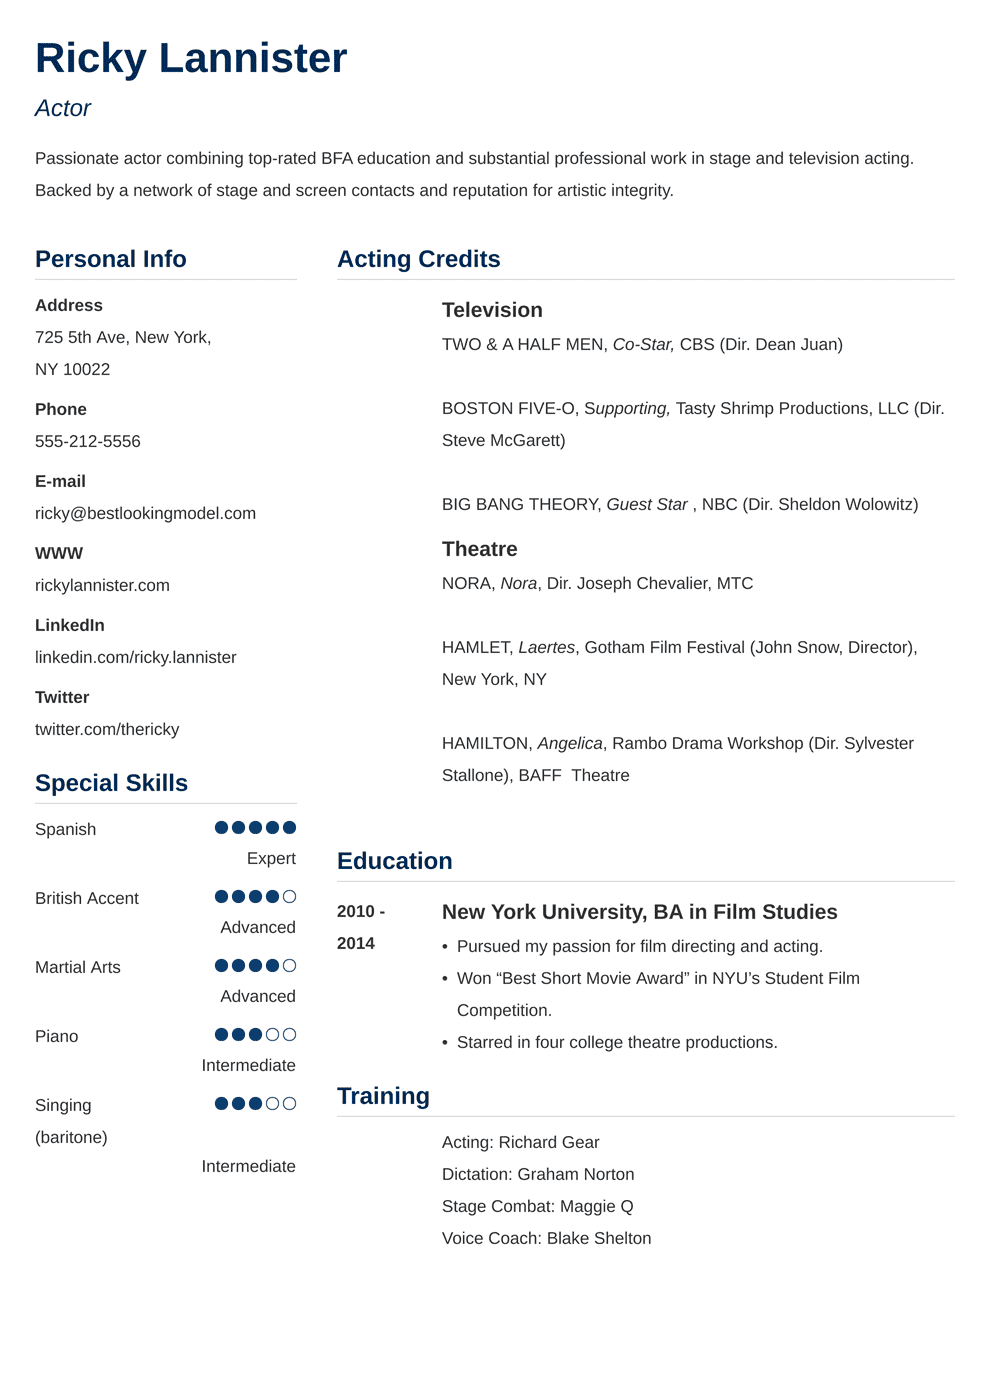 Acting Resume: Template, Sample & Actor Resume Advice [20+ Tips]